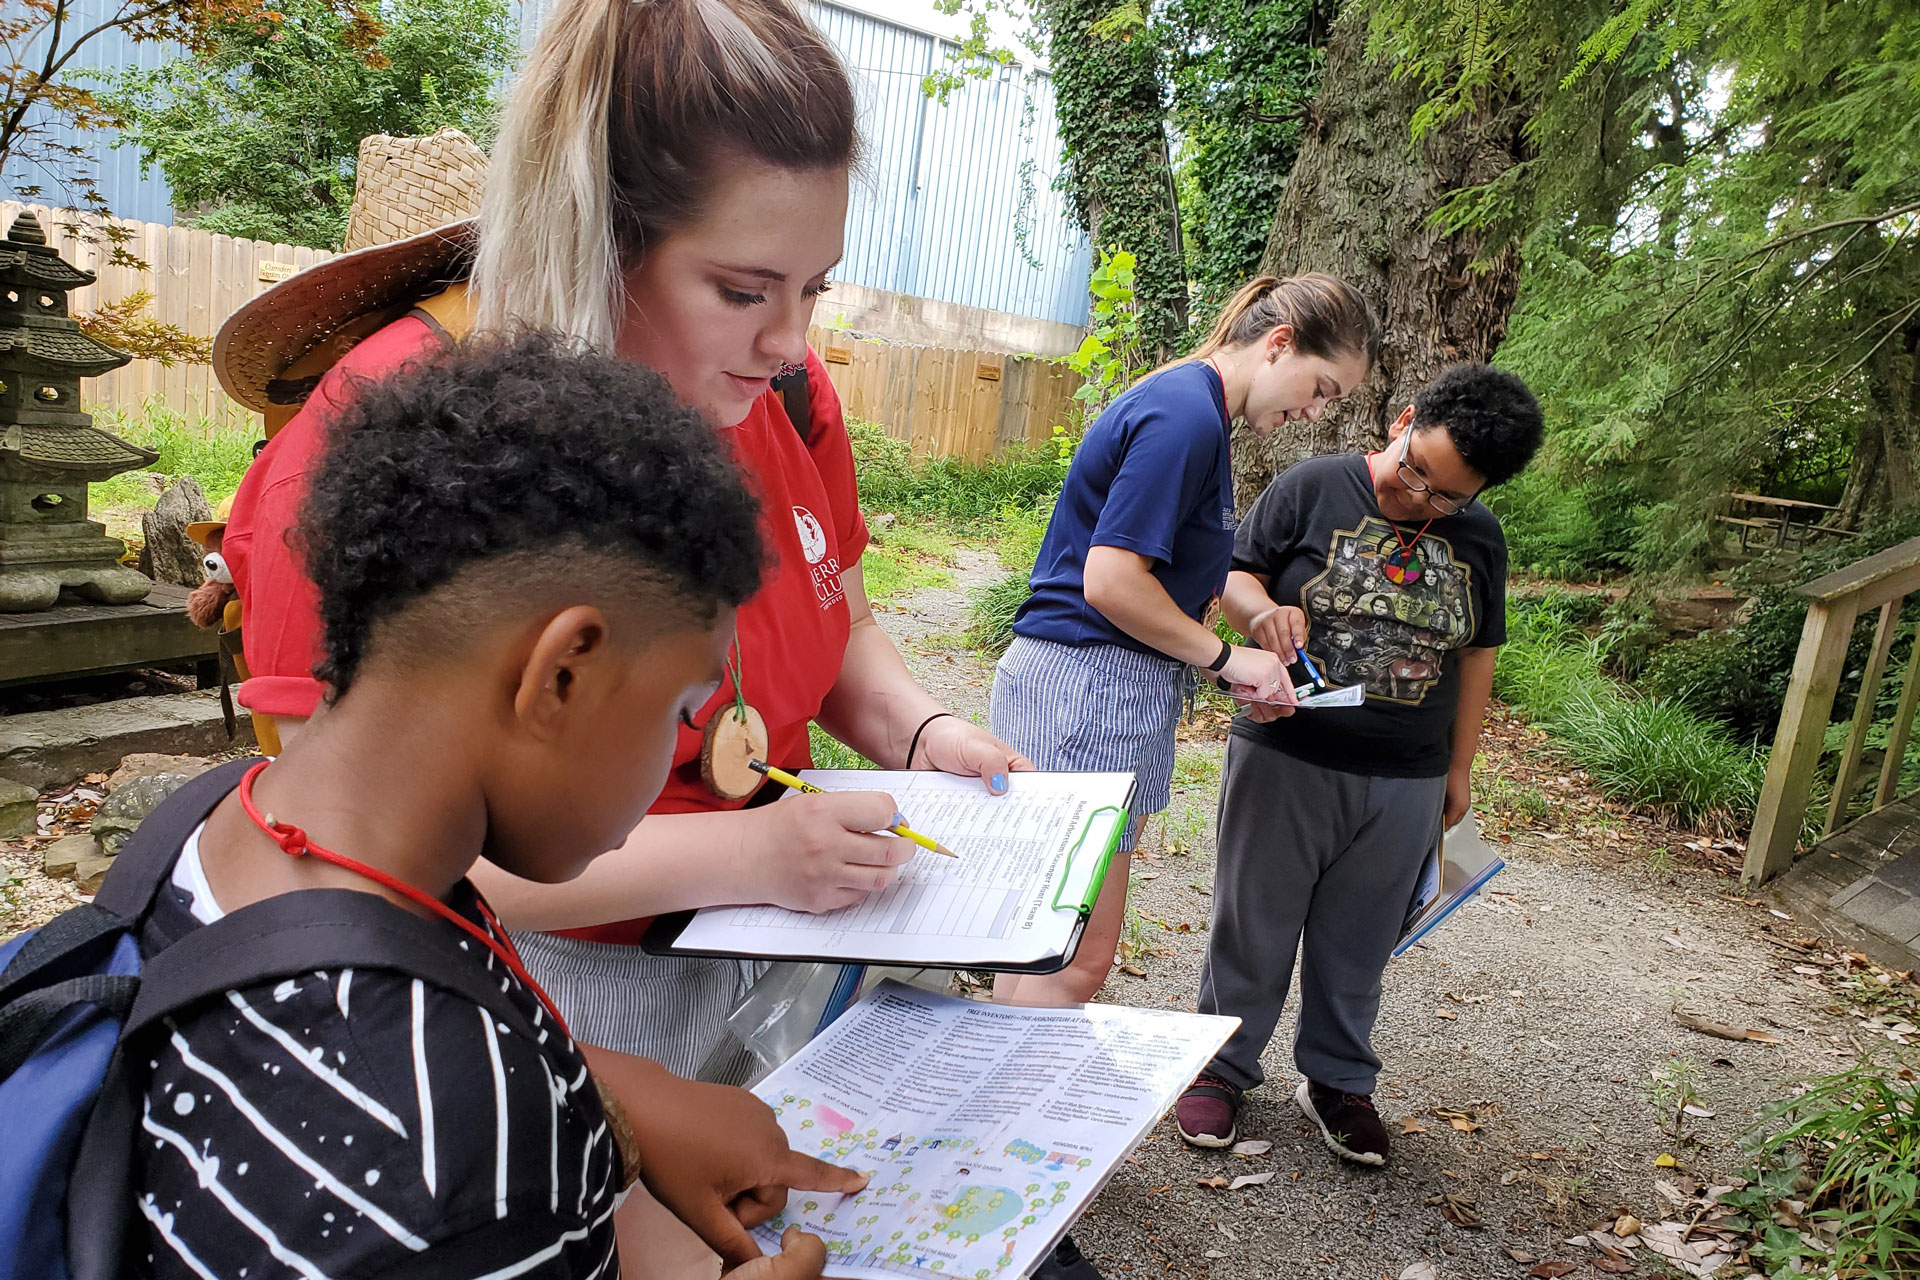 Teachers and students learn outdoors